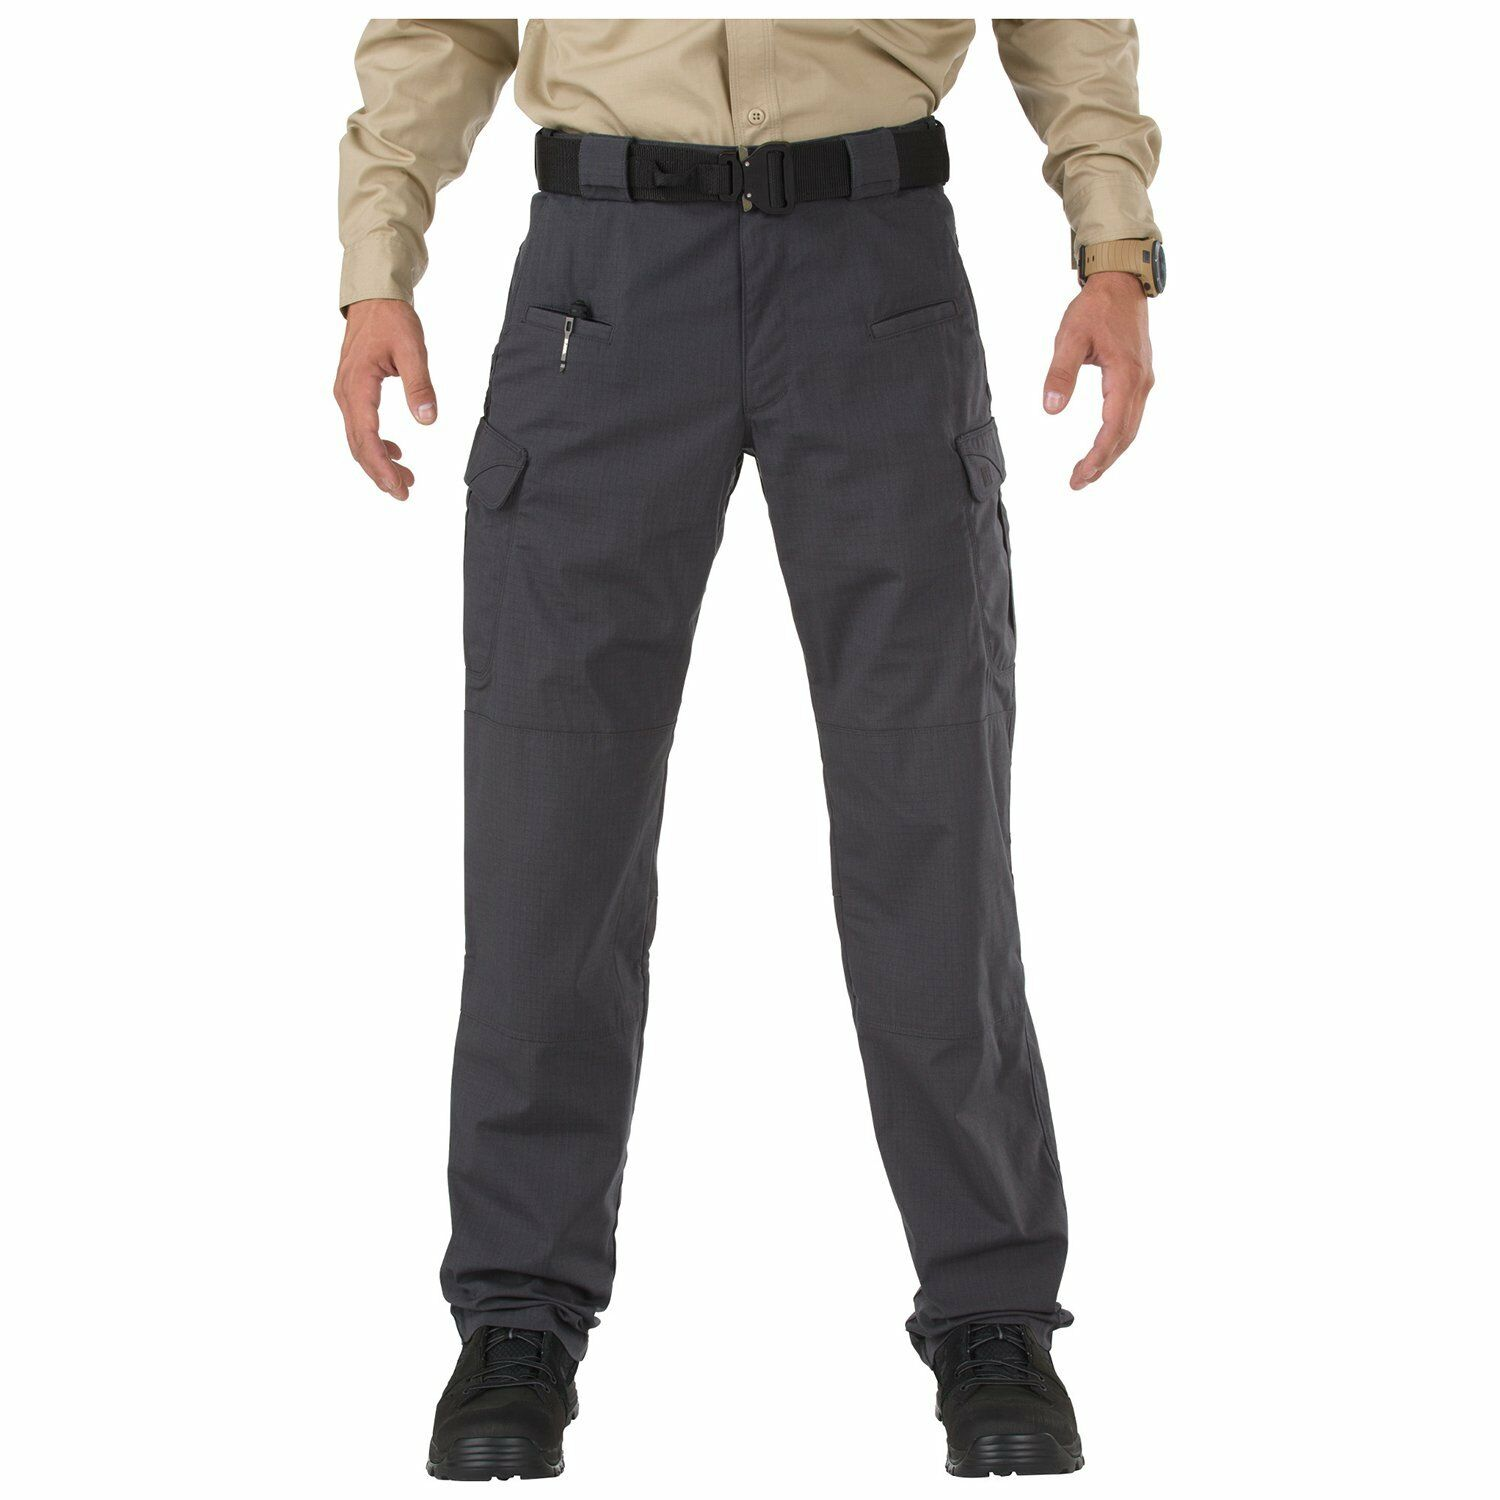 5.11 Tactical Stryke Pants Pant - Charcoal All Sizes